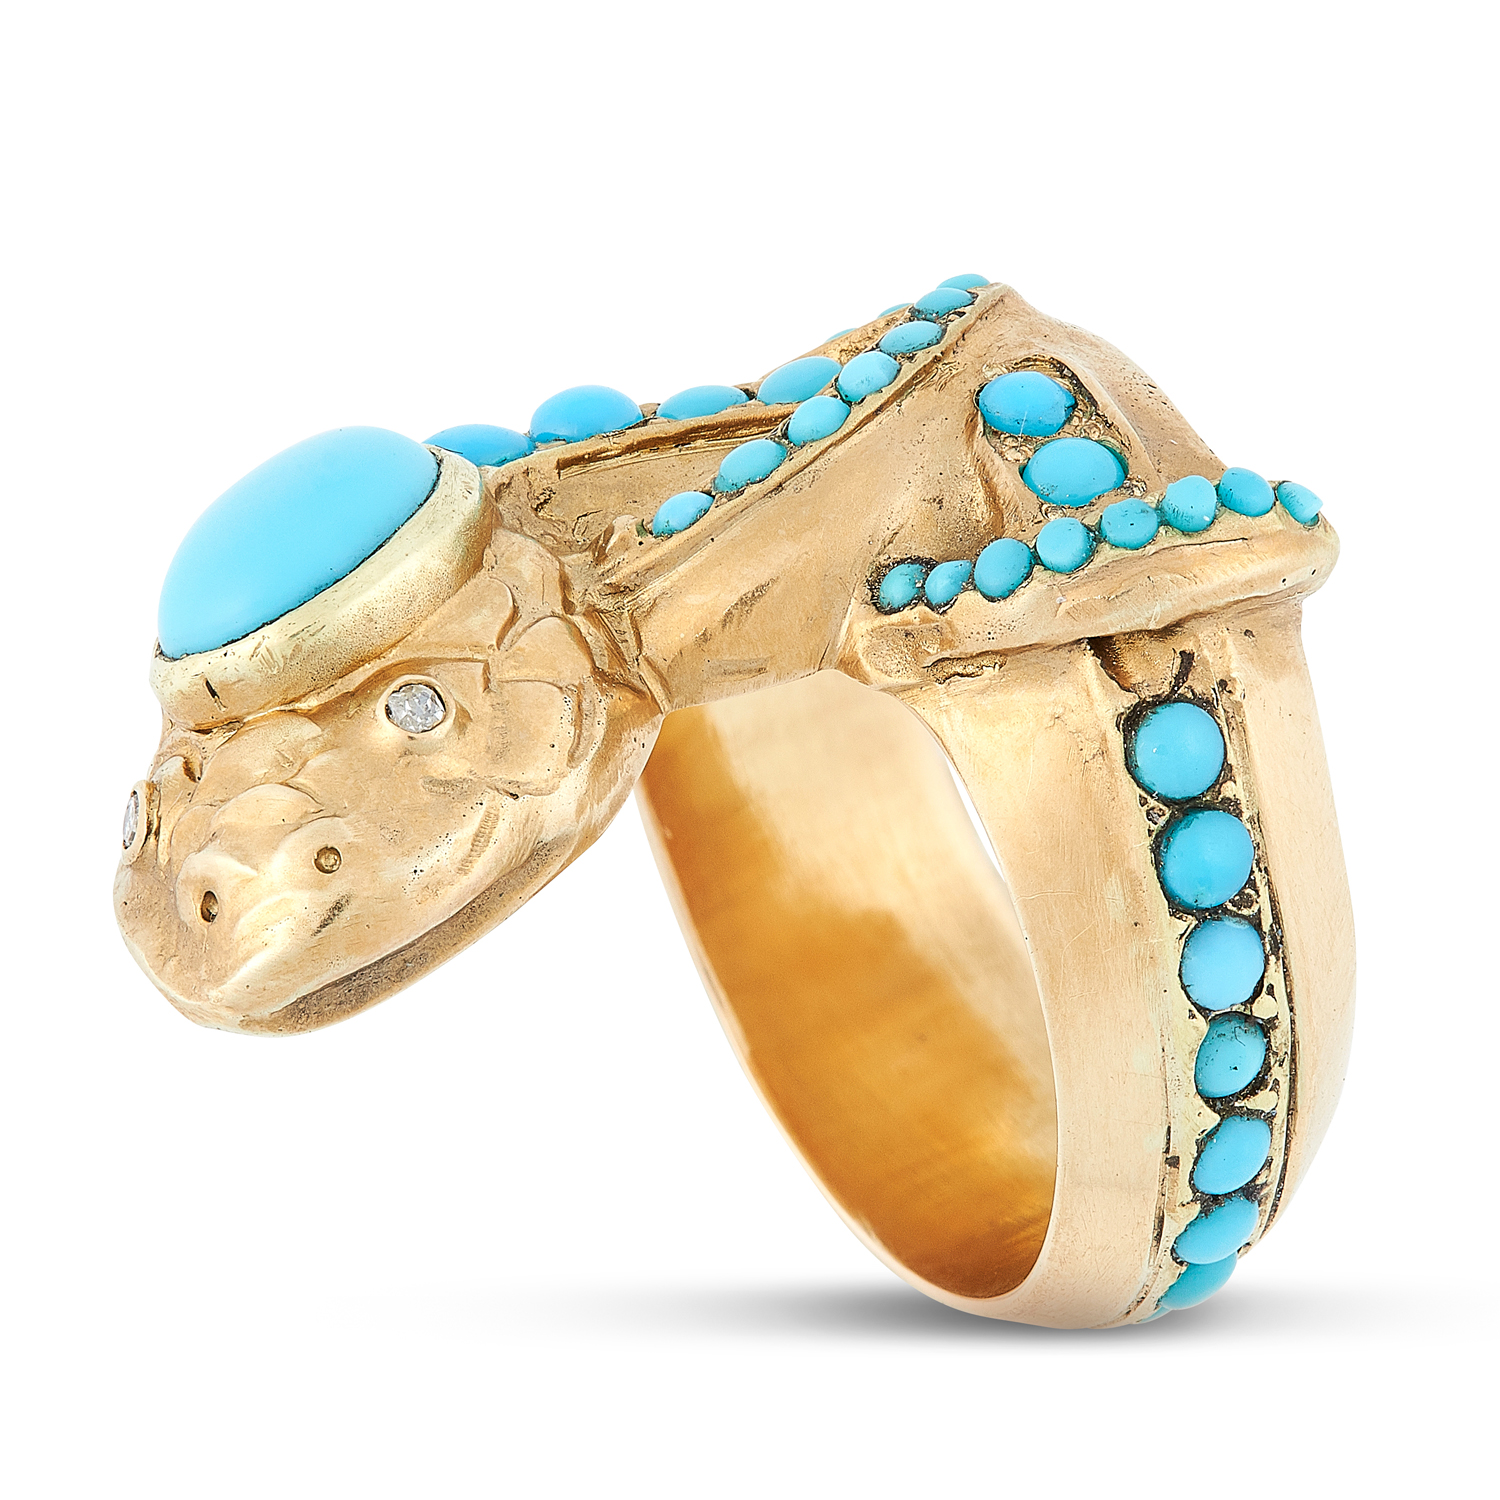 AN ANTIQUE TURQUOISE AND DIAMOND SNAKE RING, LATE 19TH CENTURY in high carat yellow gold, designed